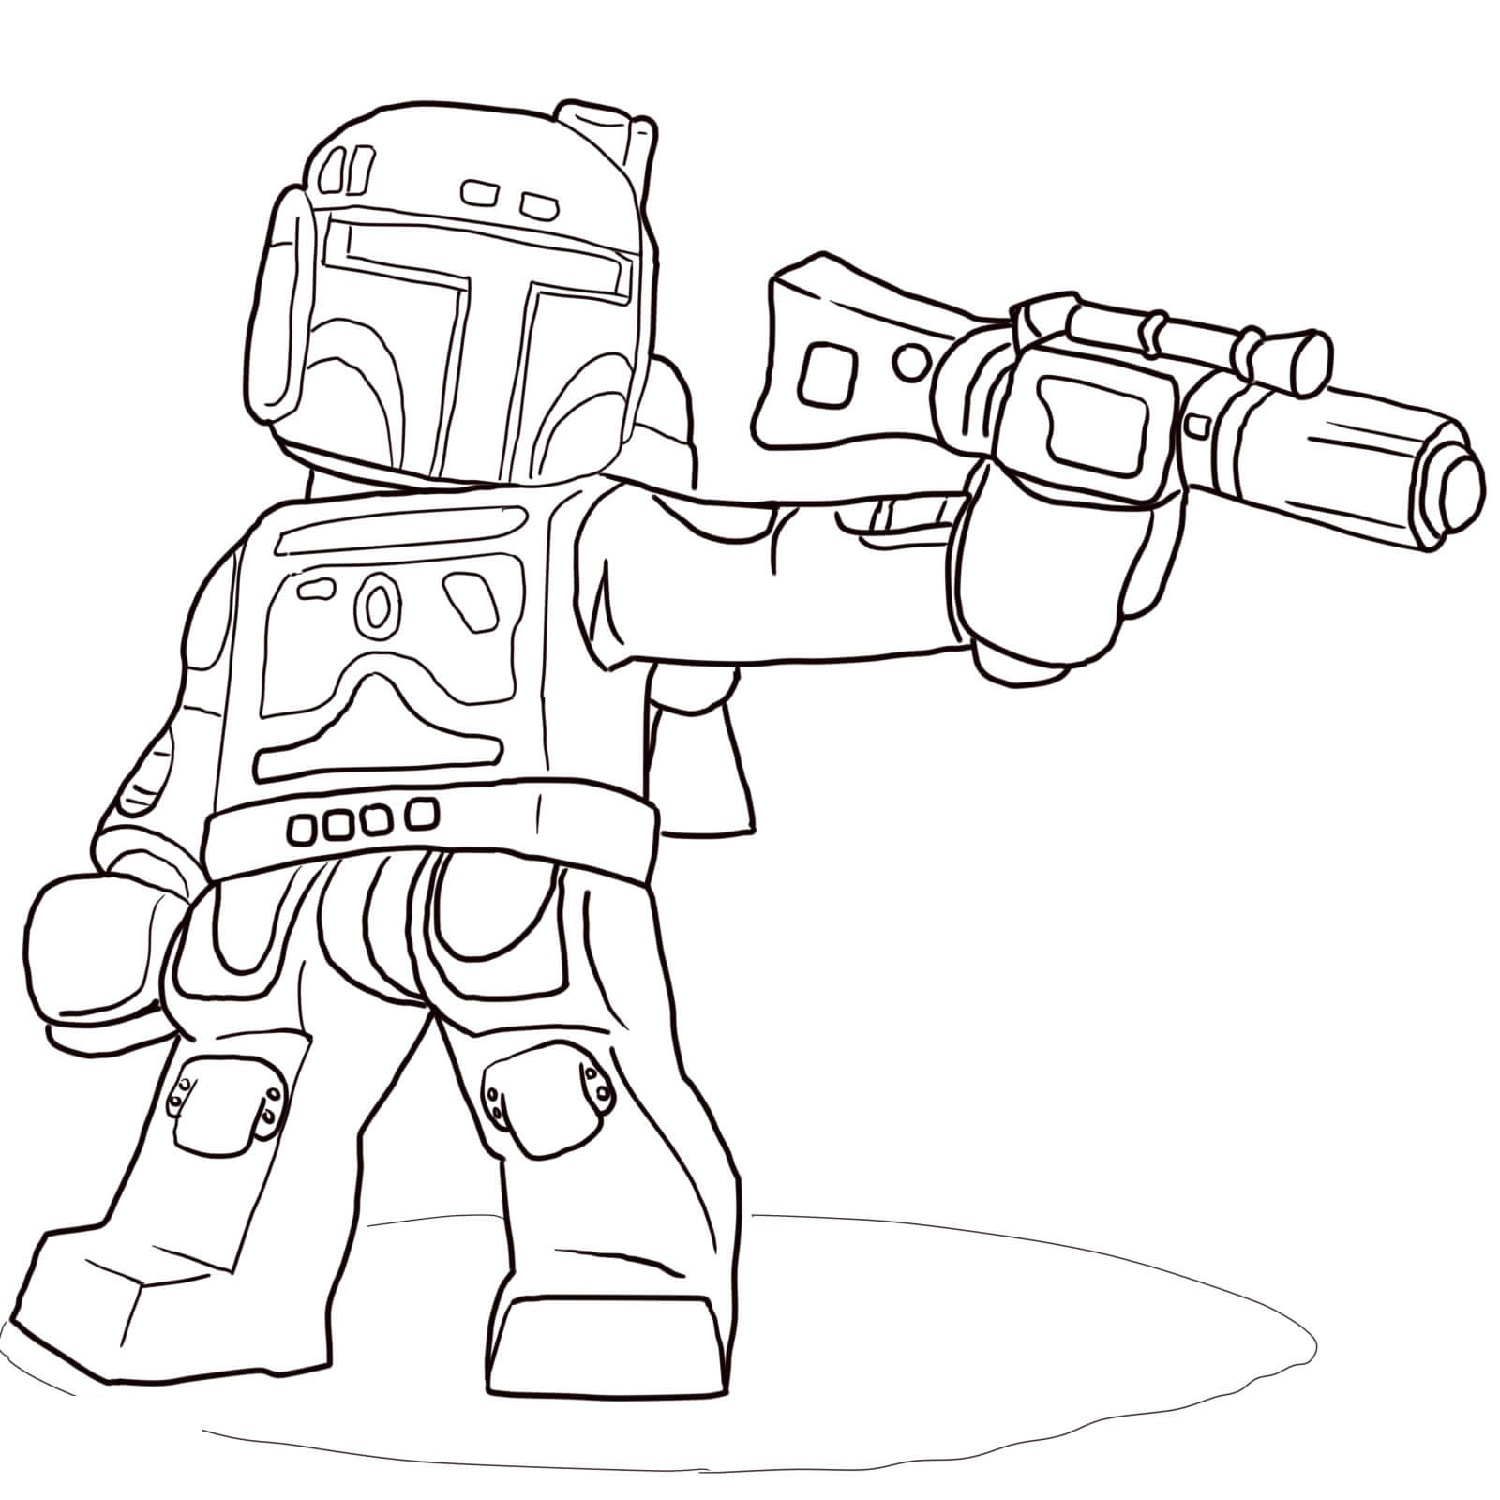 Clone Wars Coloring Pages Quick Usage